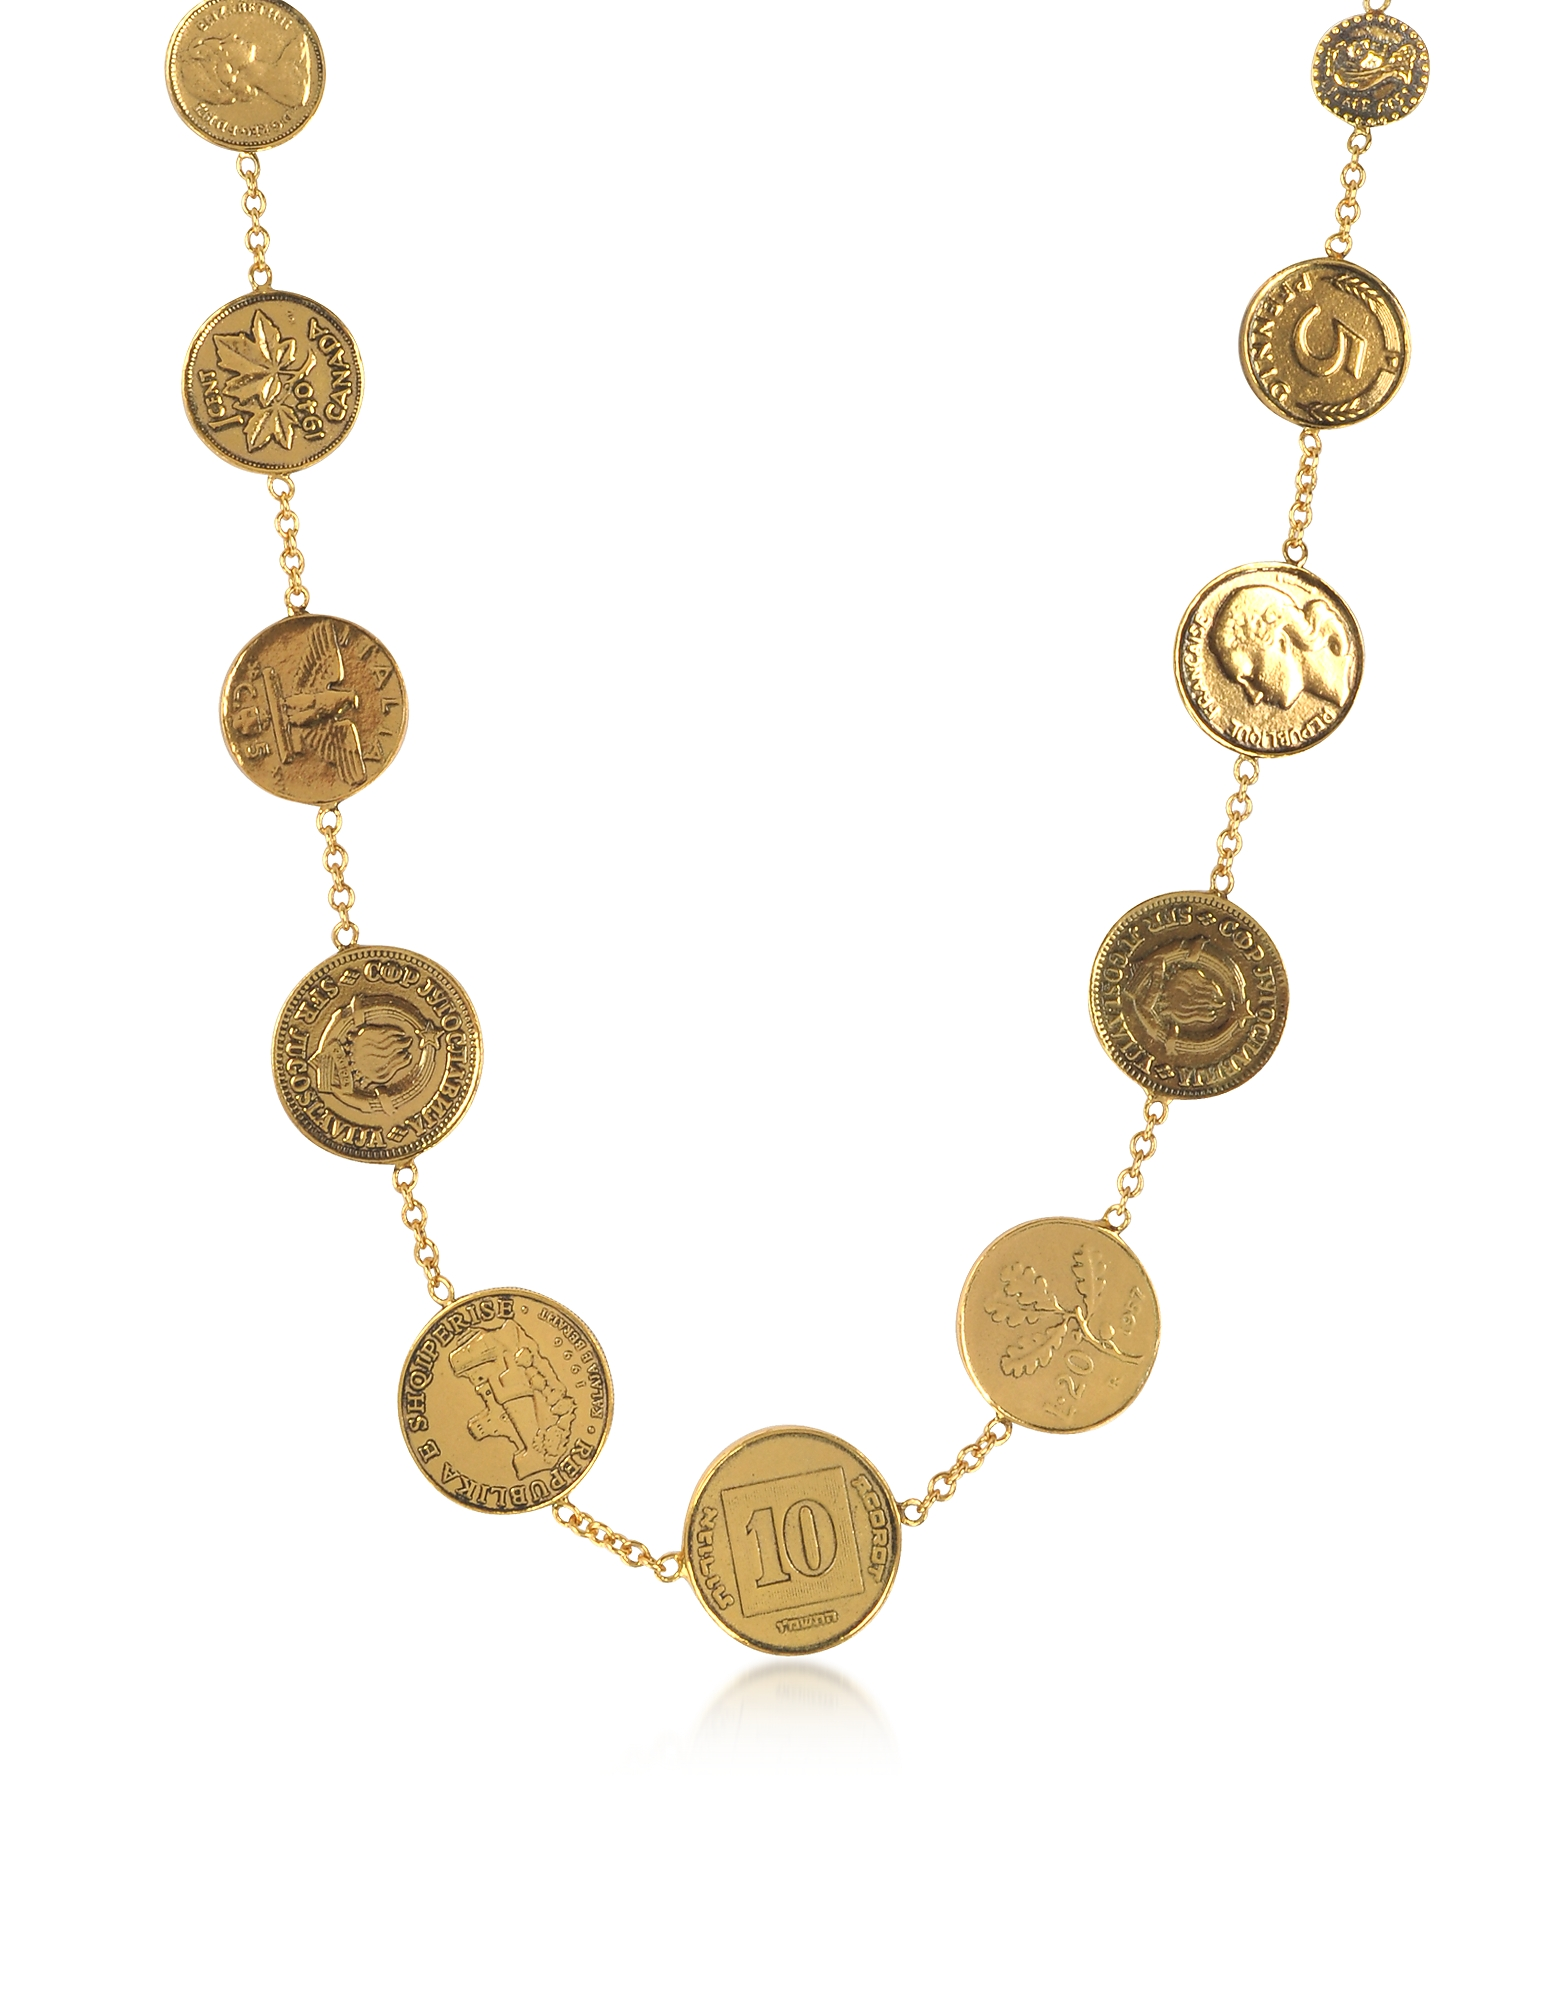 Alcozer & J Necklaces, Brass Coin Necklace